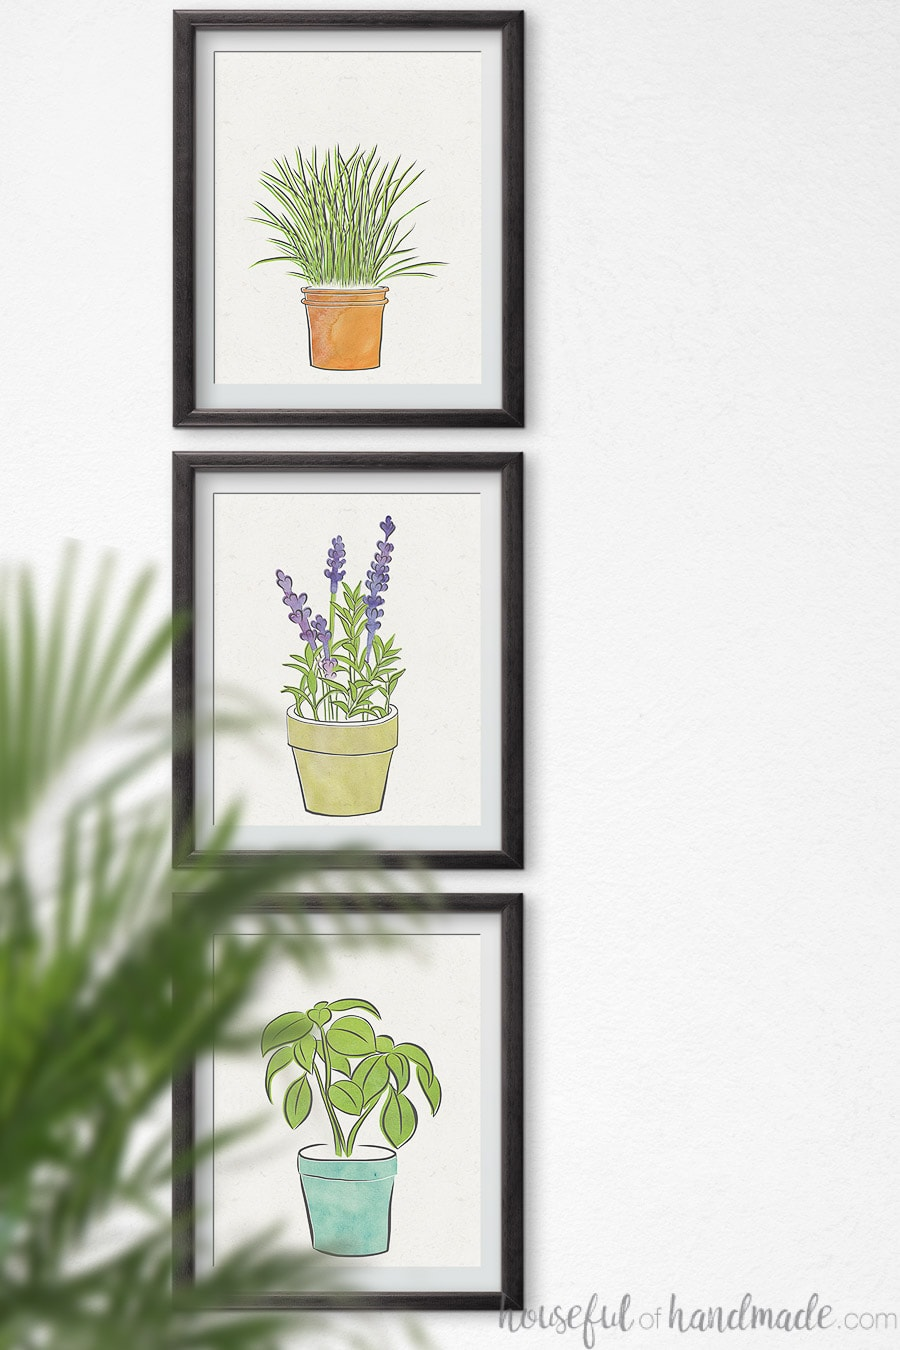 Herb art drawings of chives, lavender and basil in frames on a wall.